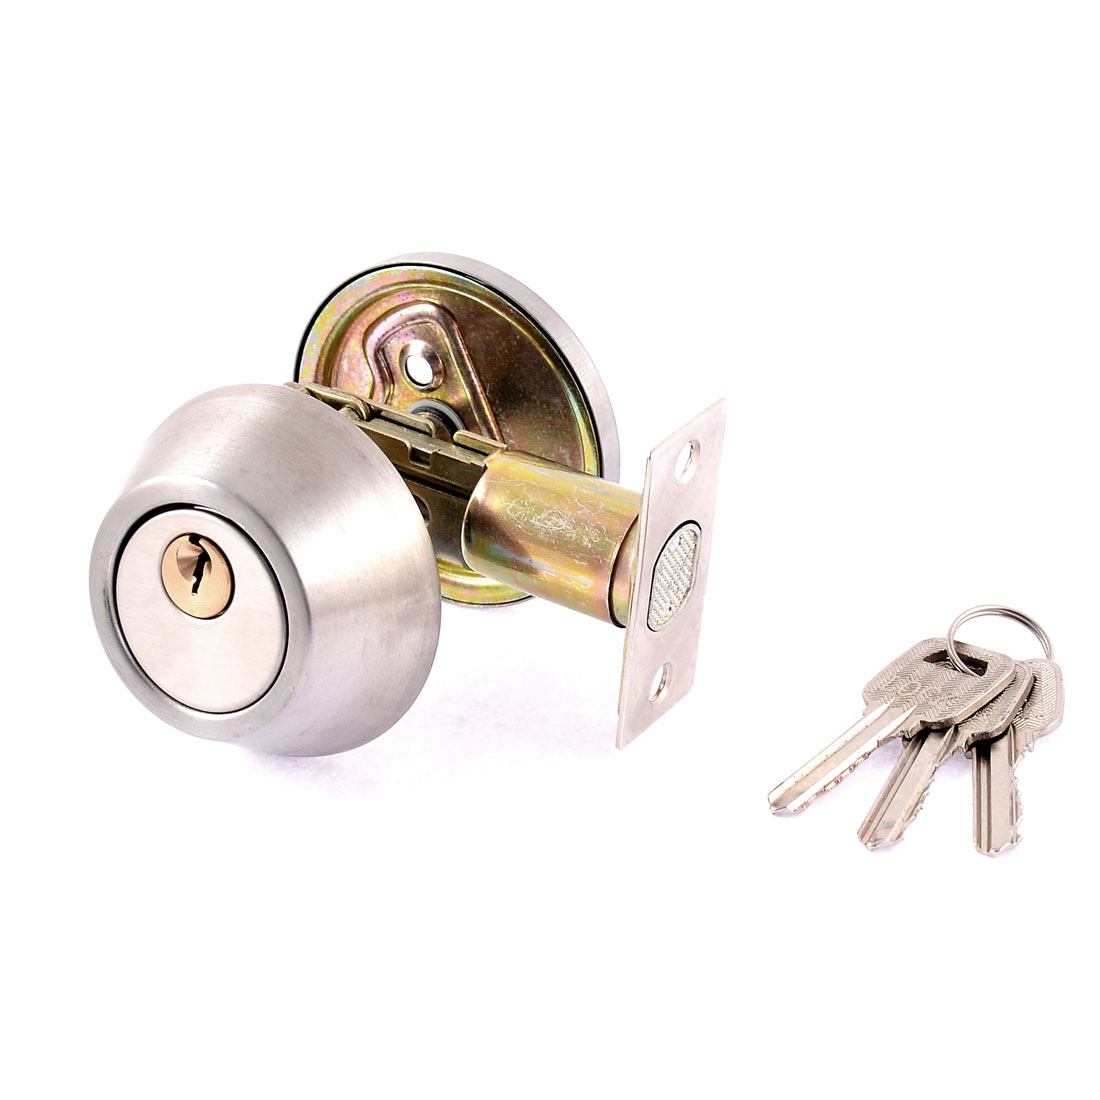 Cylinder Shape Single Deadbolt Security Door Keyed Locks knob Lockset